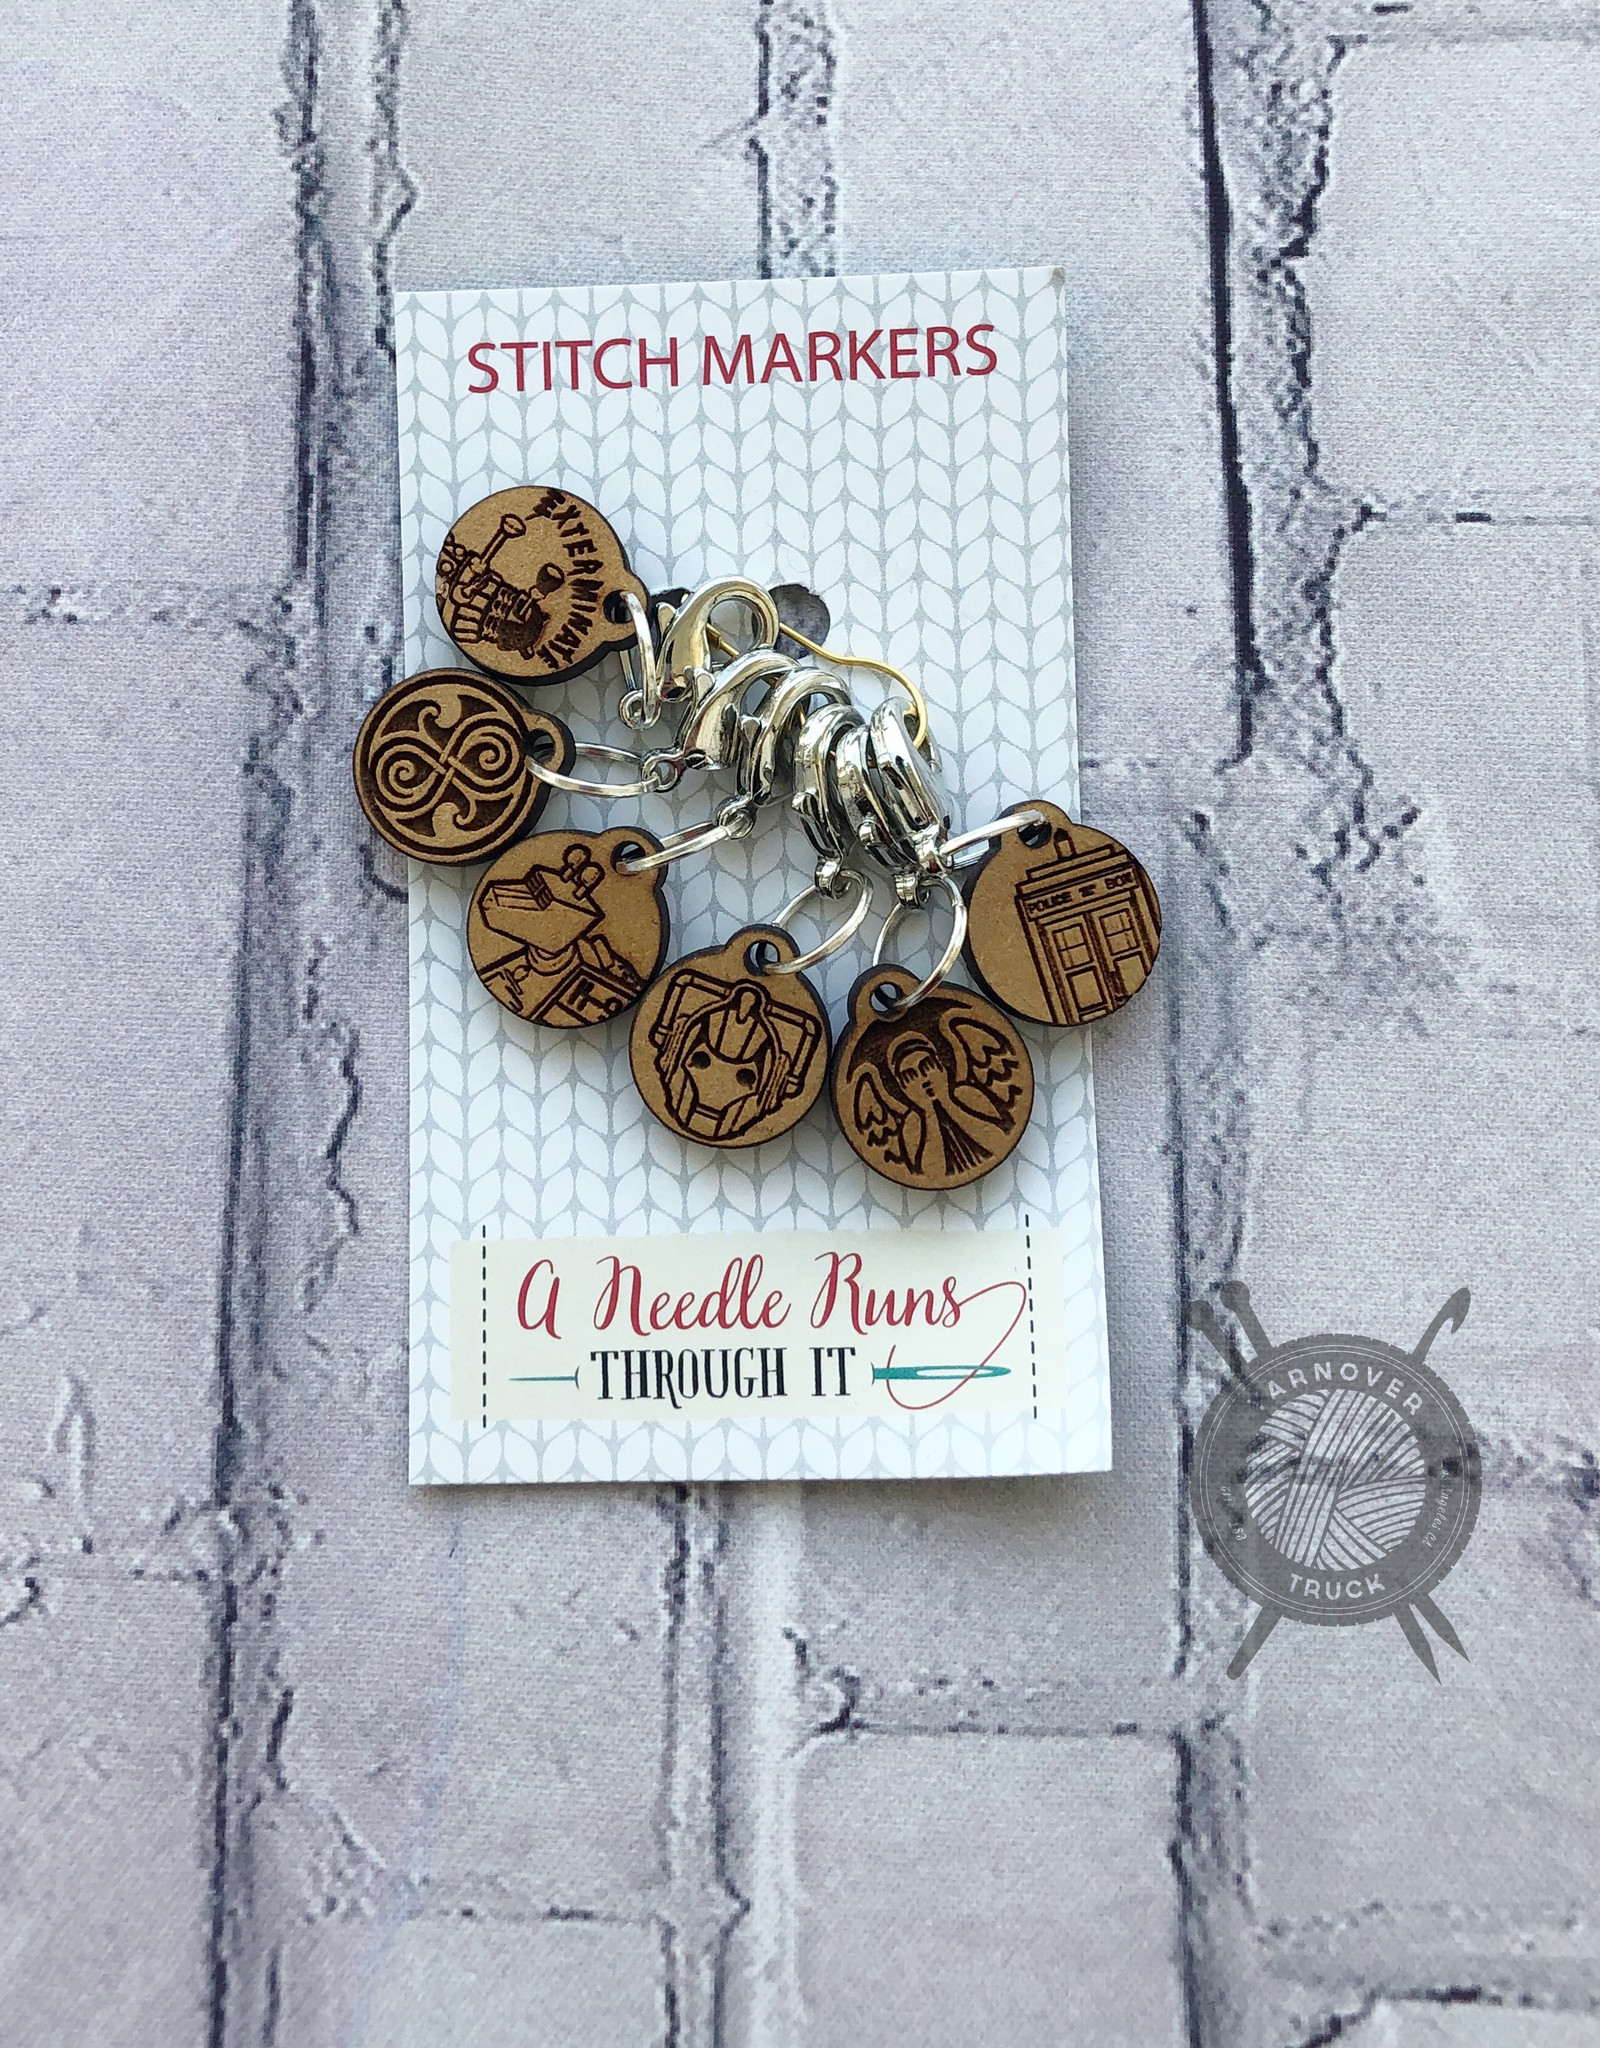 A Needle Runs Through It Dr. Who Themed Stitch Marker Set for Crochet